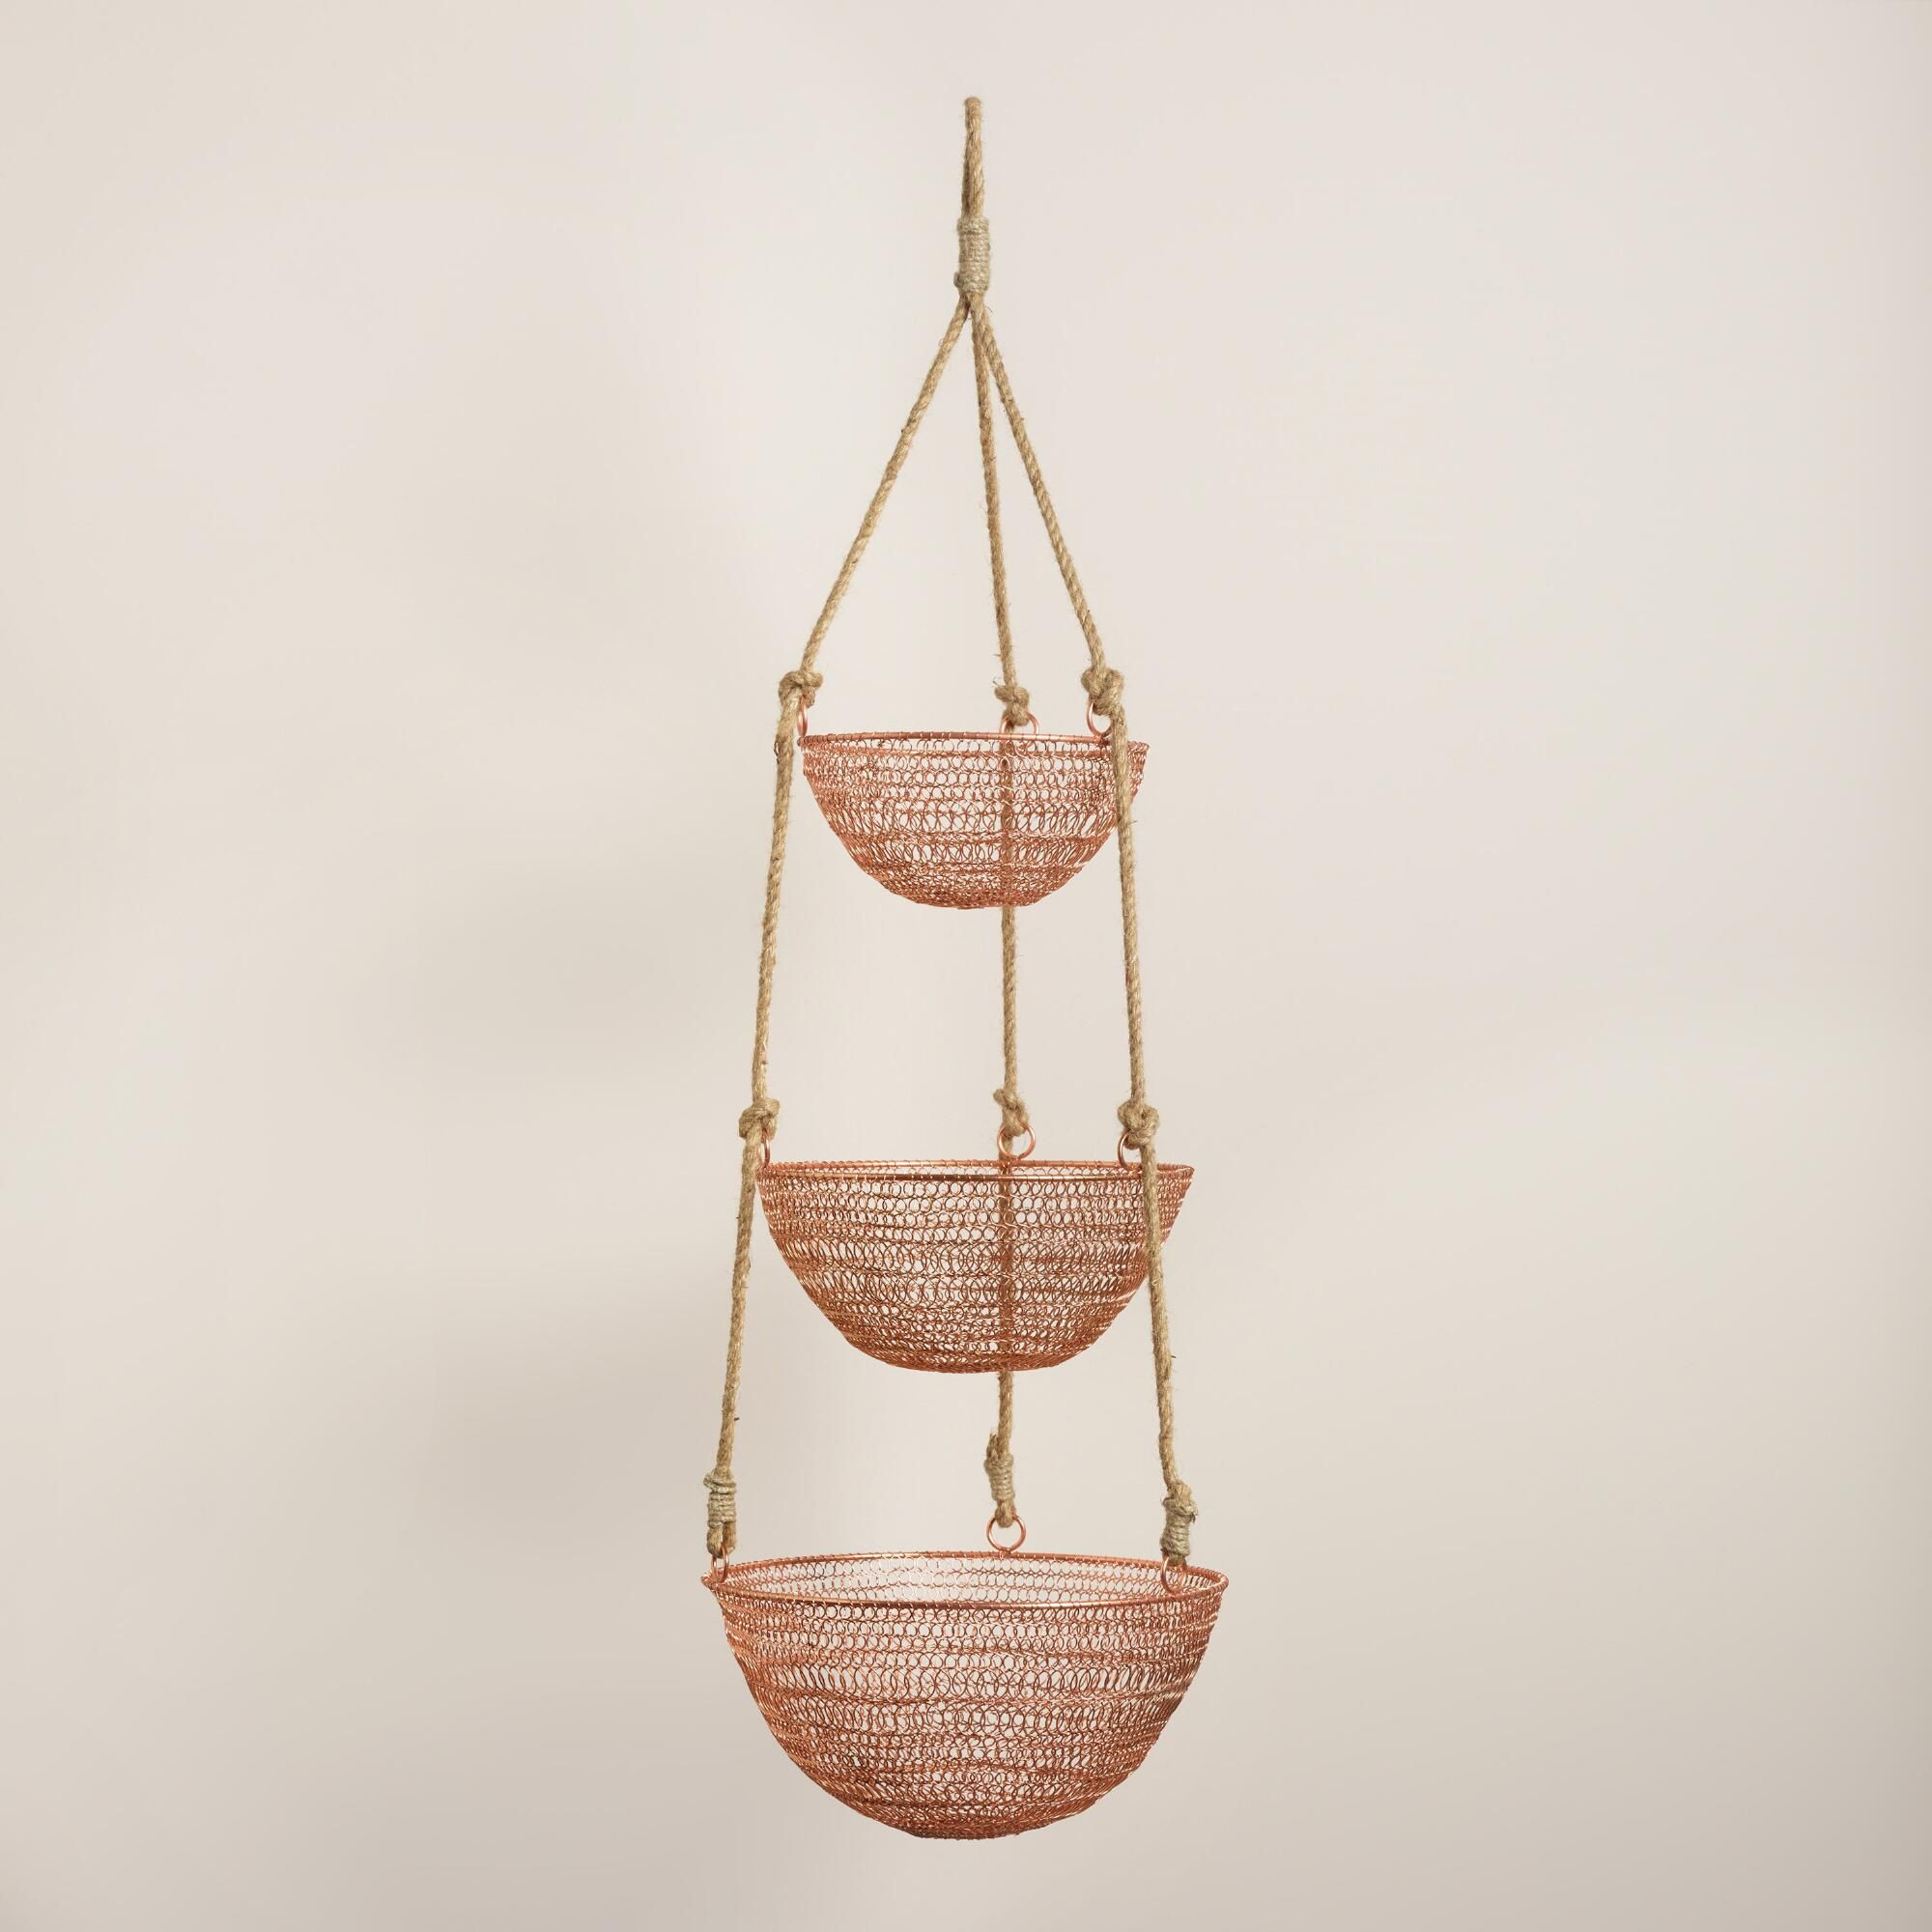 Copper And Rope 3 Tier Hanging Basket Rope Decor Hanging Fruit Baskets Hanging Baskets